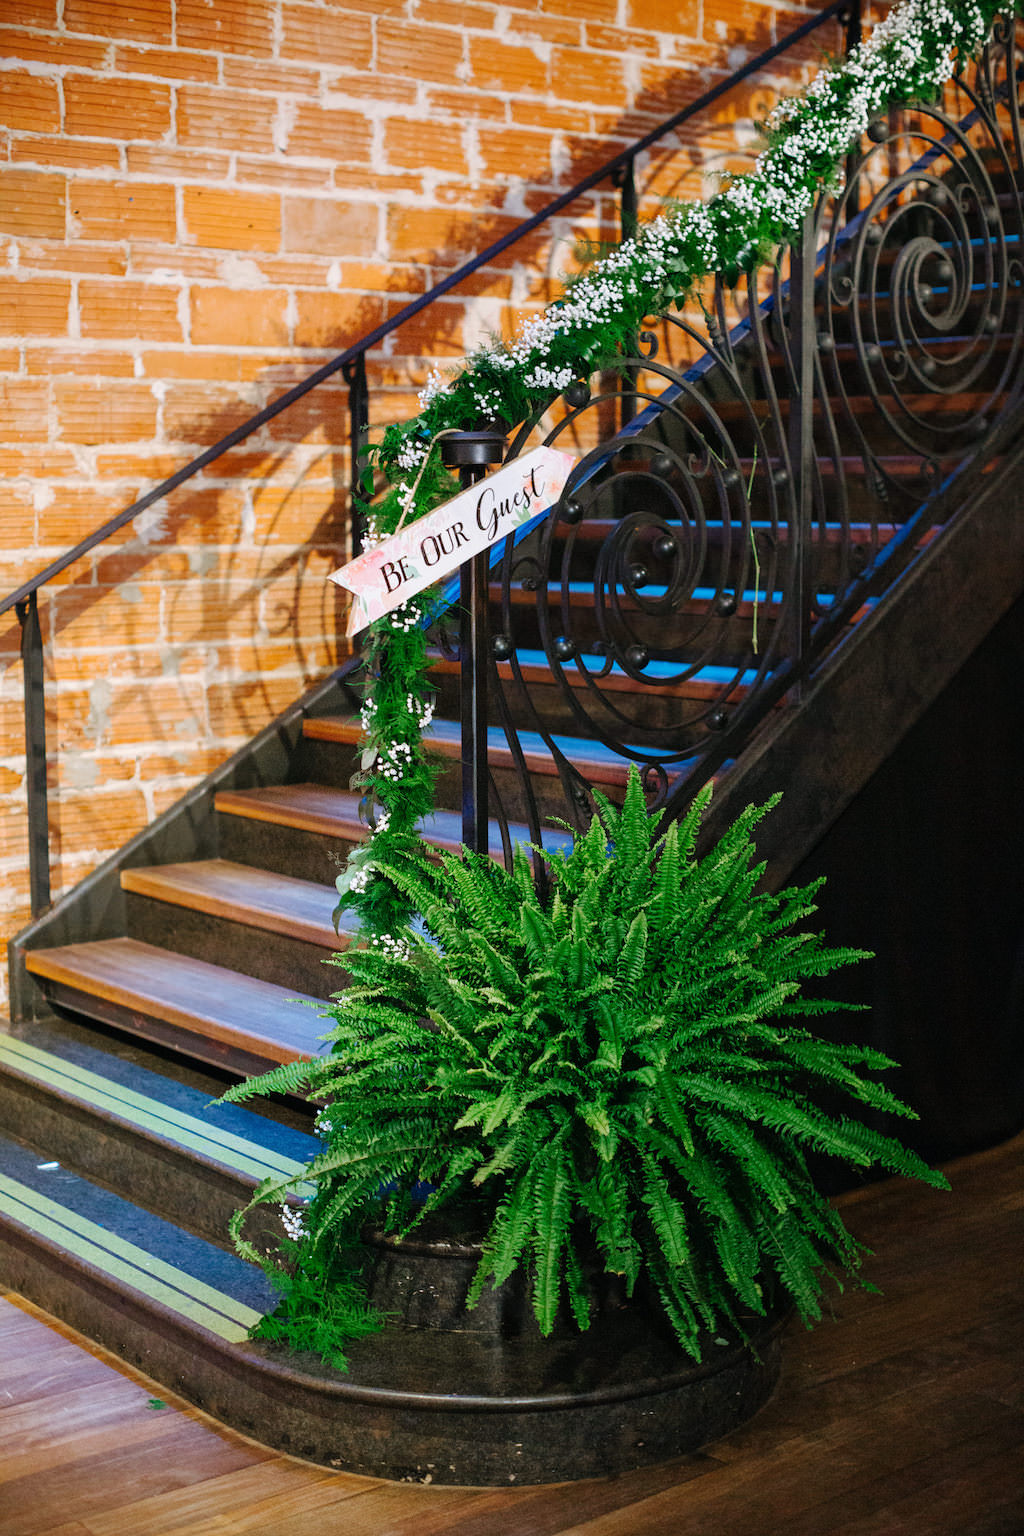 Modern, Romantic Reception and Florida Wedding Decor, Greenery Plant, Garland on Staircase with Babies Breath Florals | Tampa Bay Premier Wedding Venue NOVA 535 in Downtown St. Pete